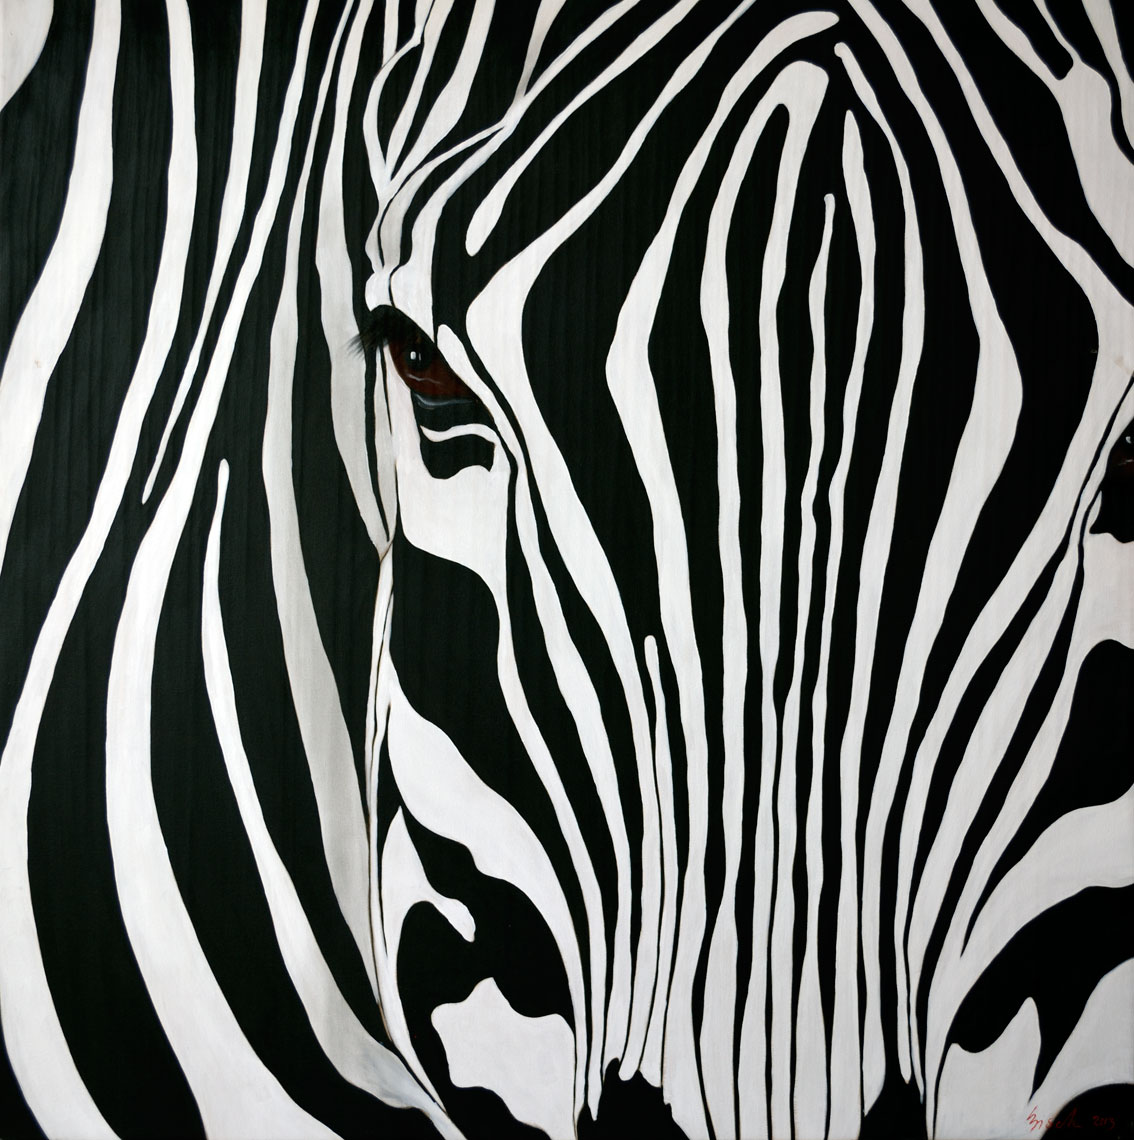 ZEBRA CLOSE UP divers Thierry Bisch Contemporary painter animals painting art decoration nature biodiversity conservation